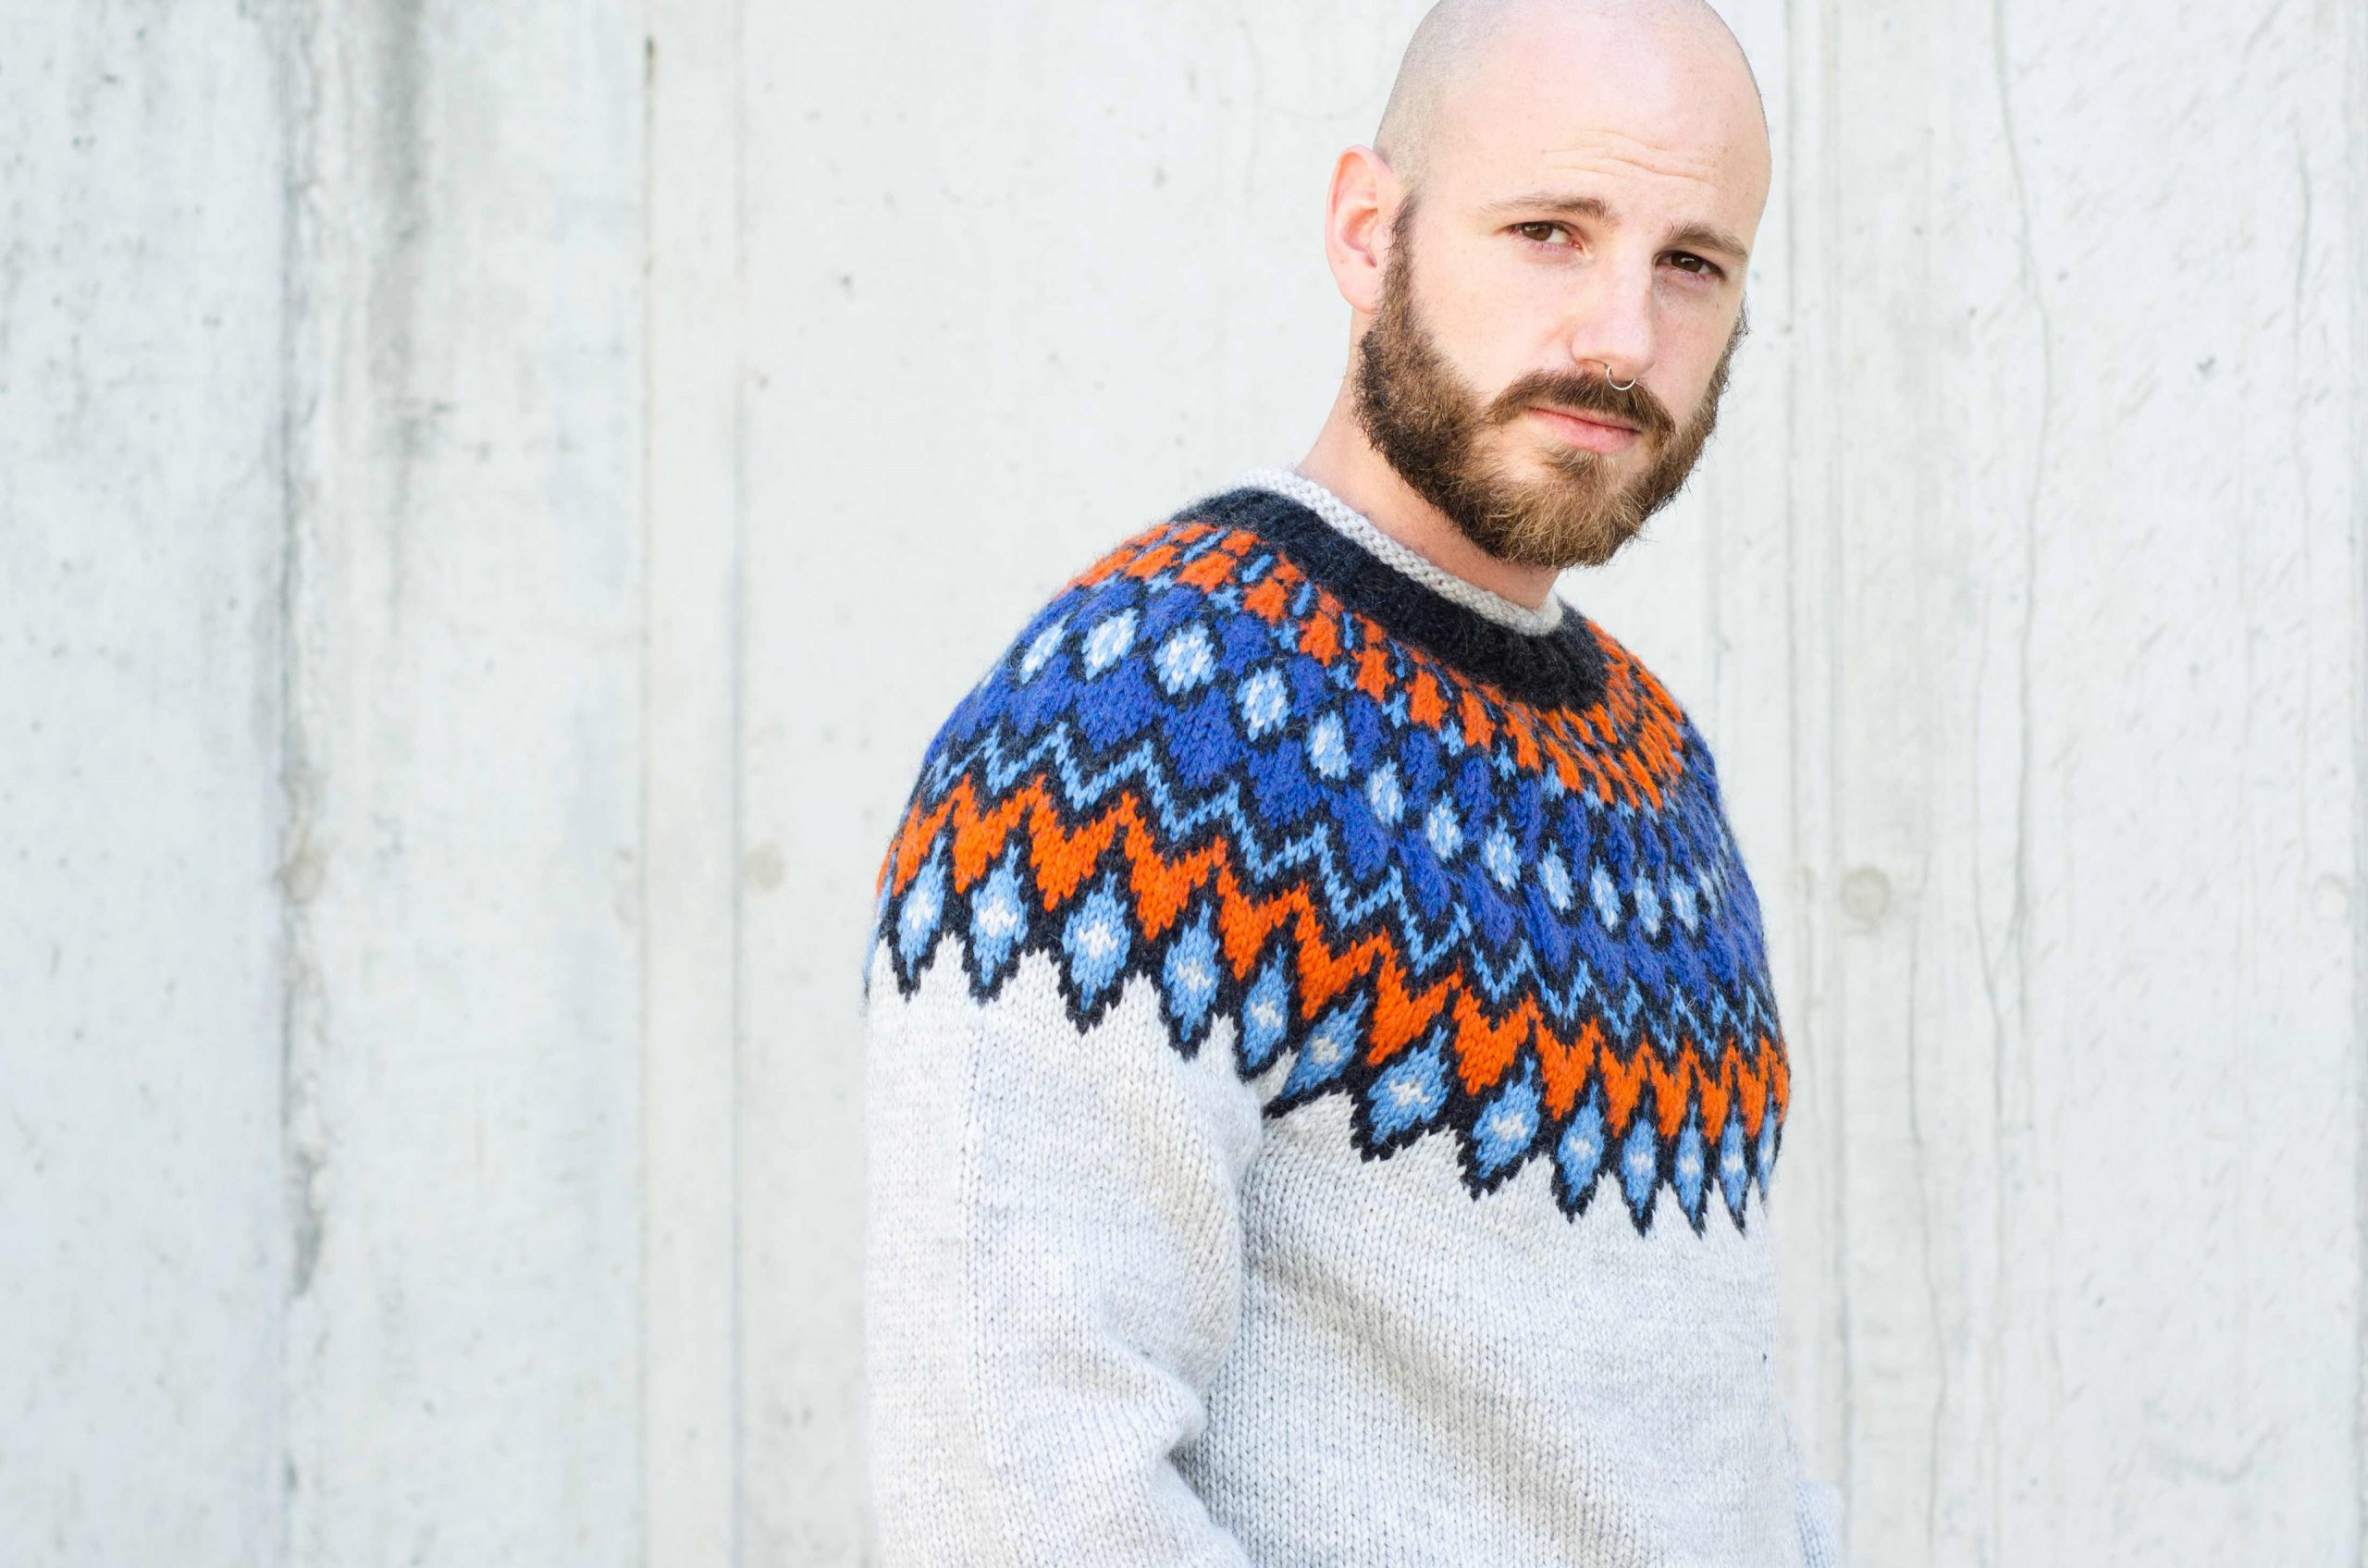 Photo of a man wearing a white handknit jumper with a bold geometric yoke in blues and oranges.